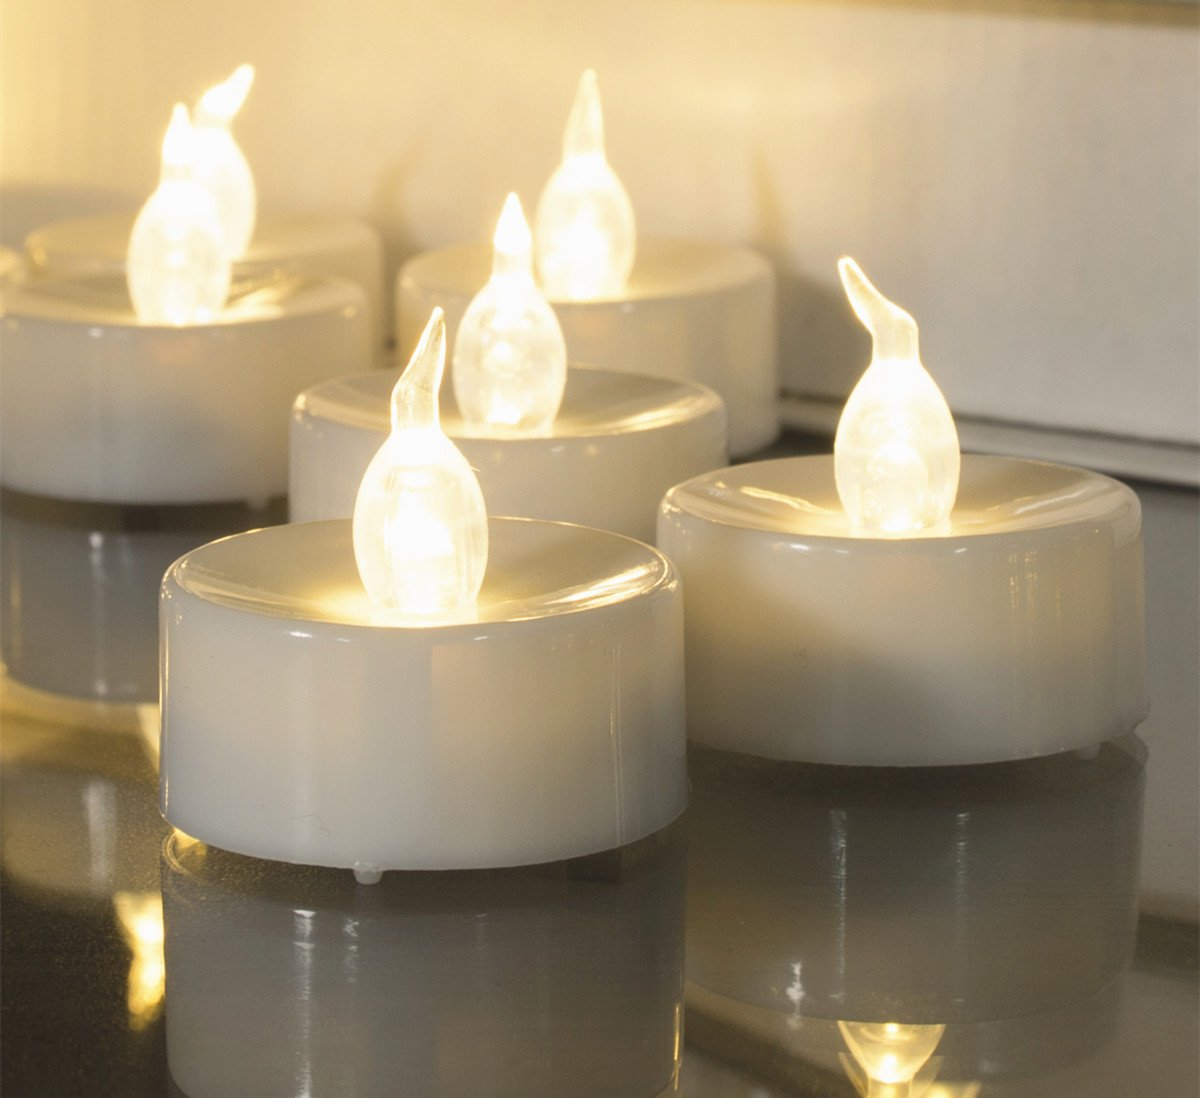 Beichi 100 Pack Flameless LED Tea Light Candles, Battery Operated Votive Tealight Little Candles with Warm White Flickering Buld Lights, Small Electric Fake Tea Candles for Holiday, Wedding, Party by Beichi (Image #2)